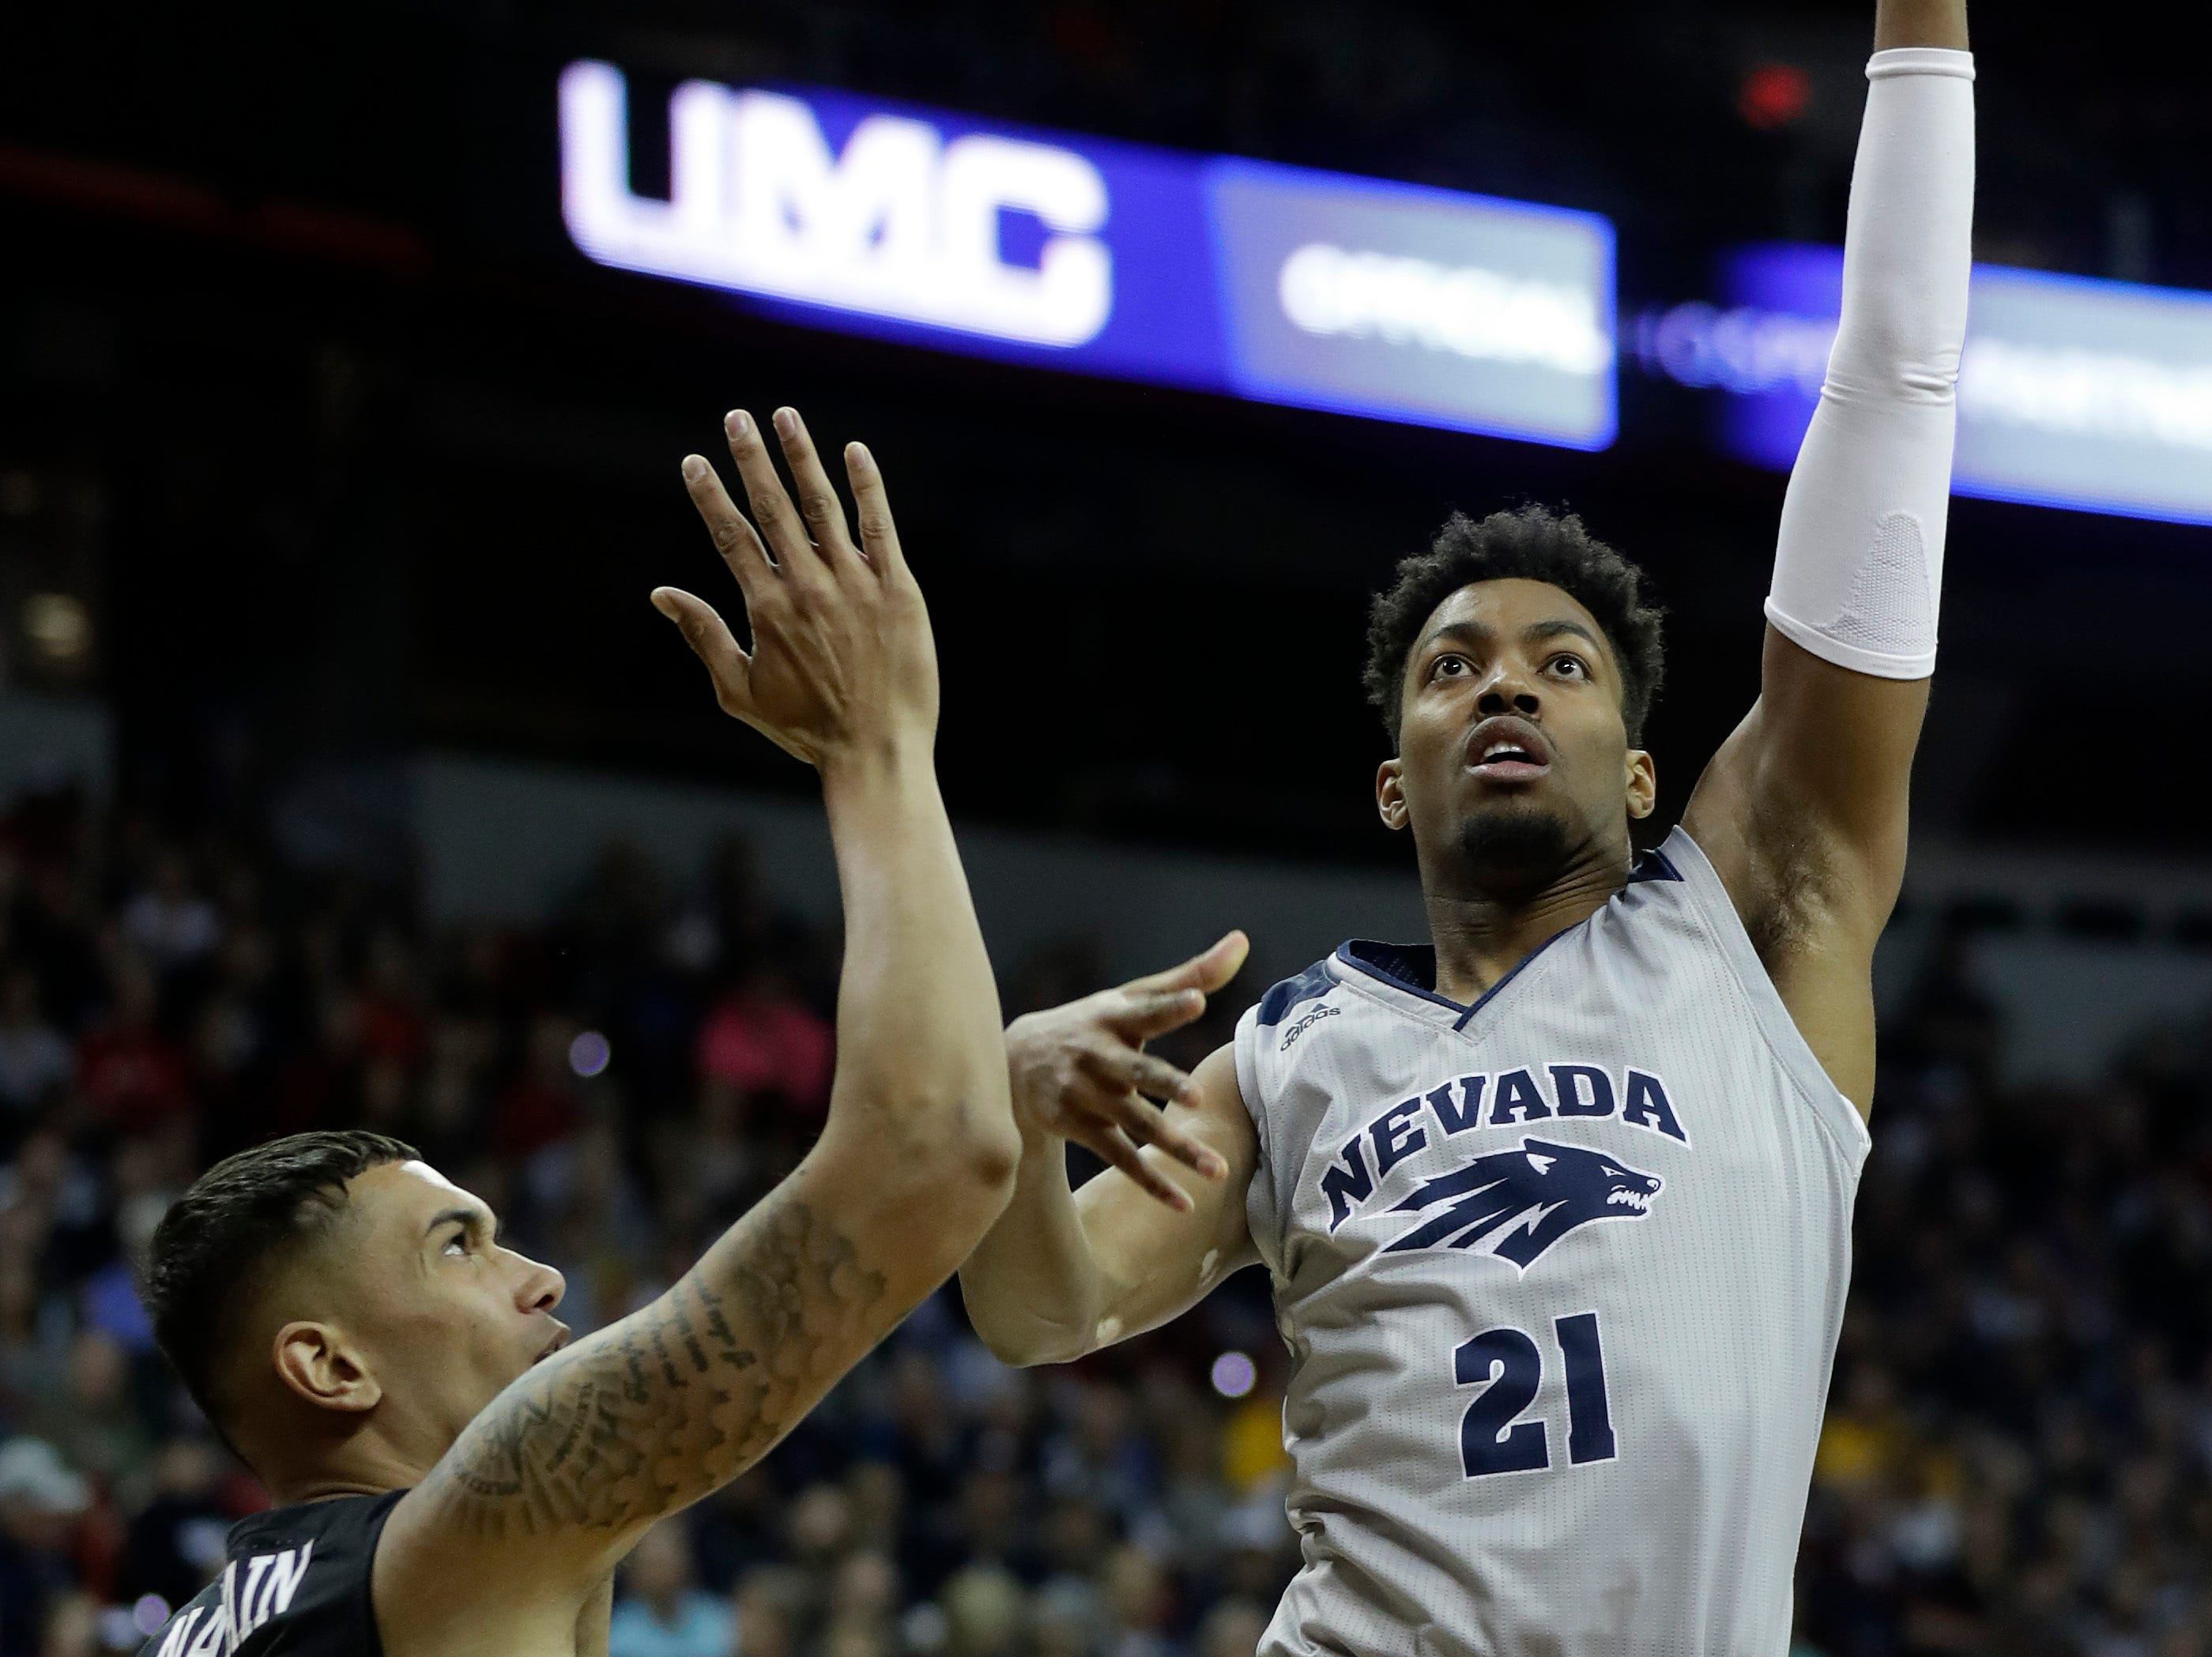 San Diego State's Nolan Narain (24) defends as Nevada's Jordan Brown (21) shoots during the first half of an NCAA college basketball game in the Mountain West Conference men's tournament Friday, March 15, 2019, in Las Vegas. (AP Photo/Isaac Brekken)